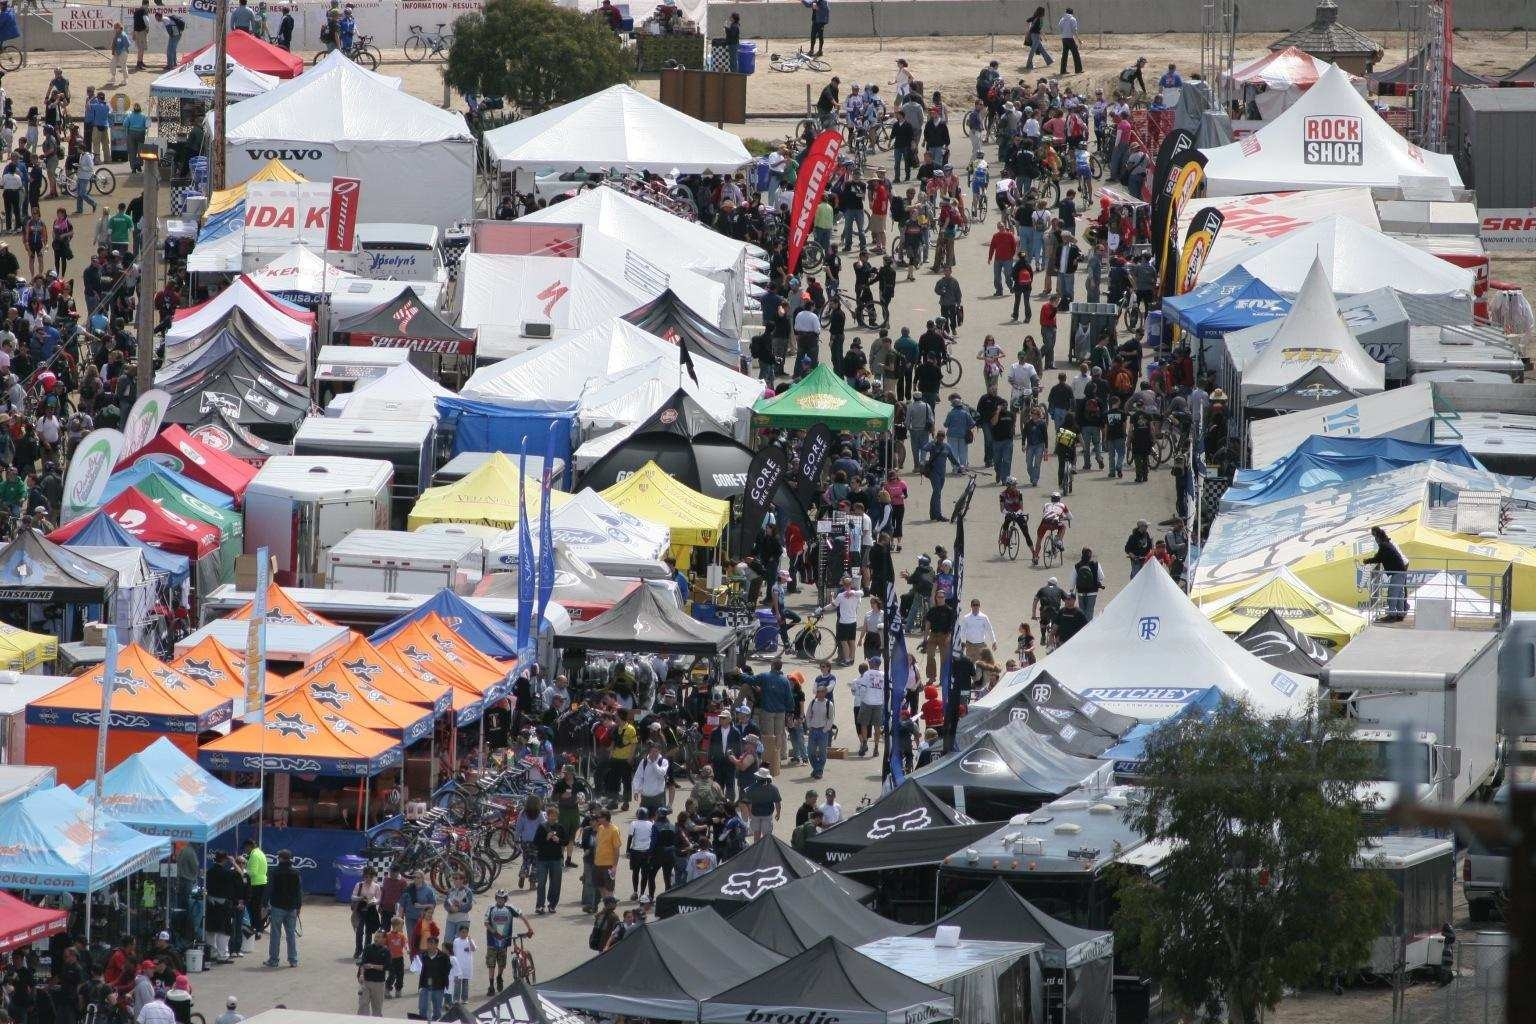 The Sea Otter Classic is a massive expo and ride fest in April.